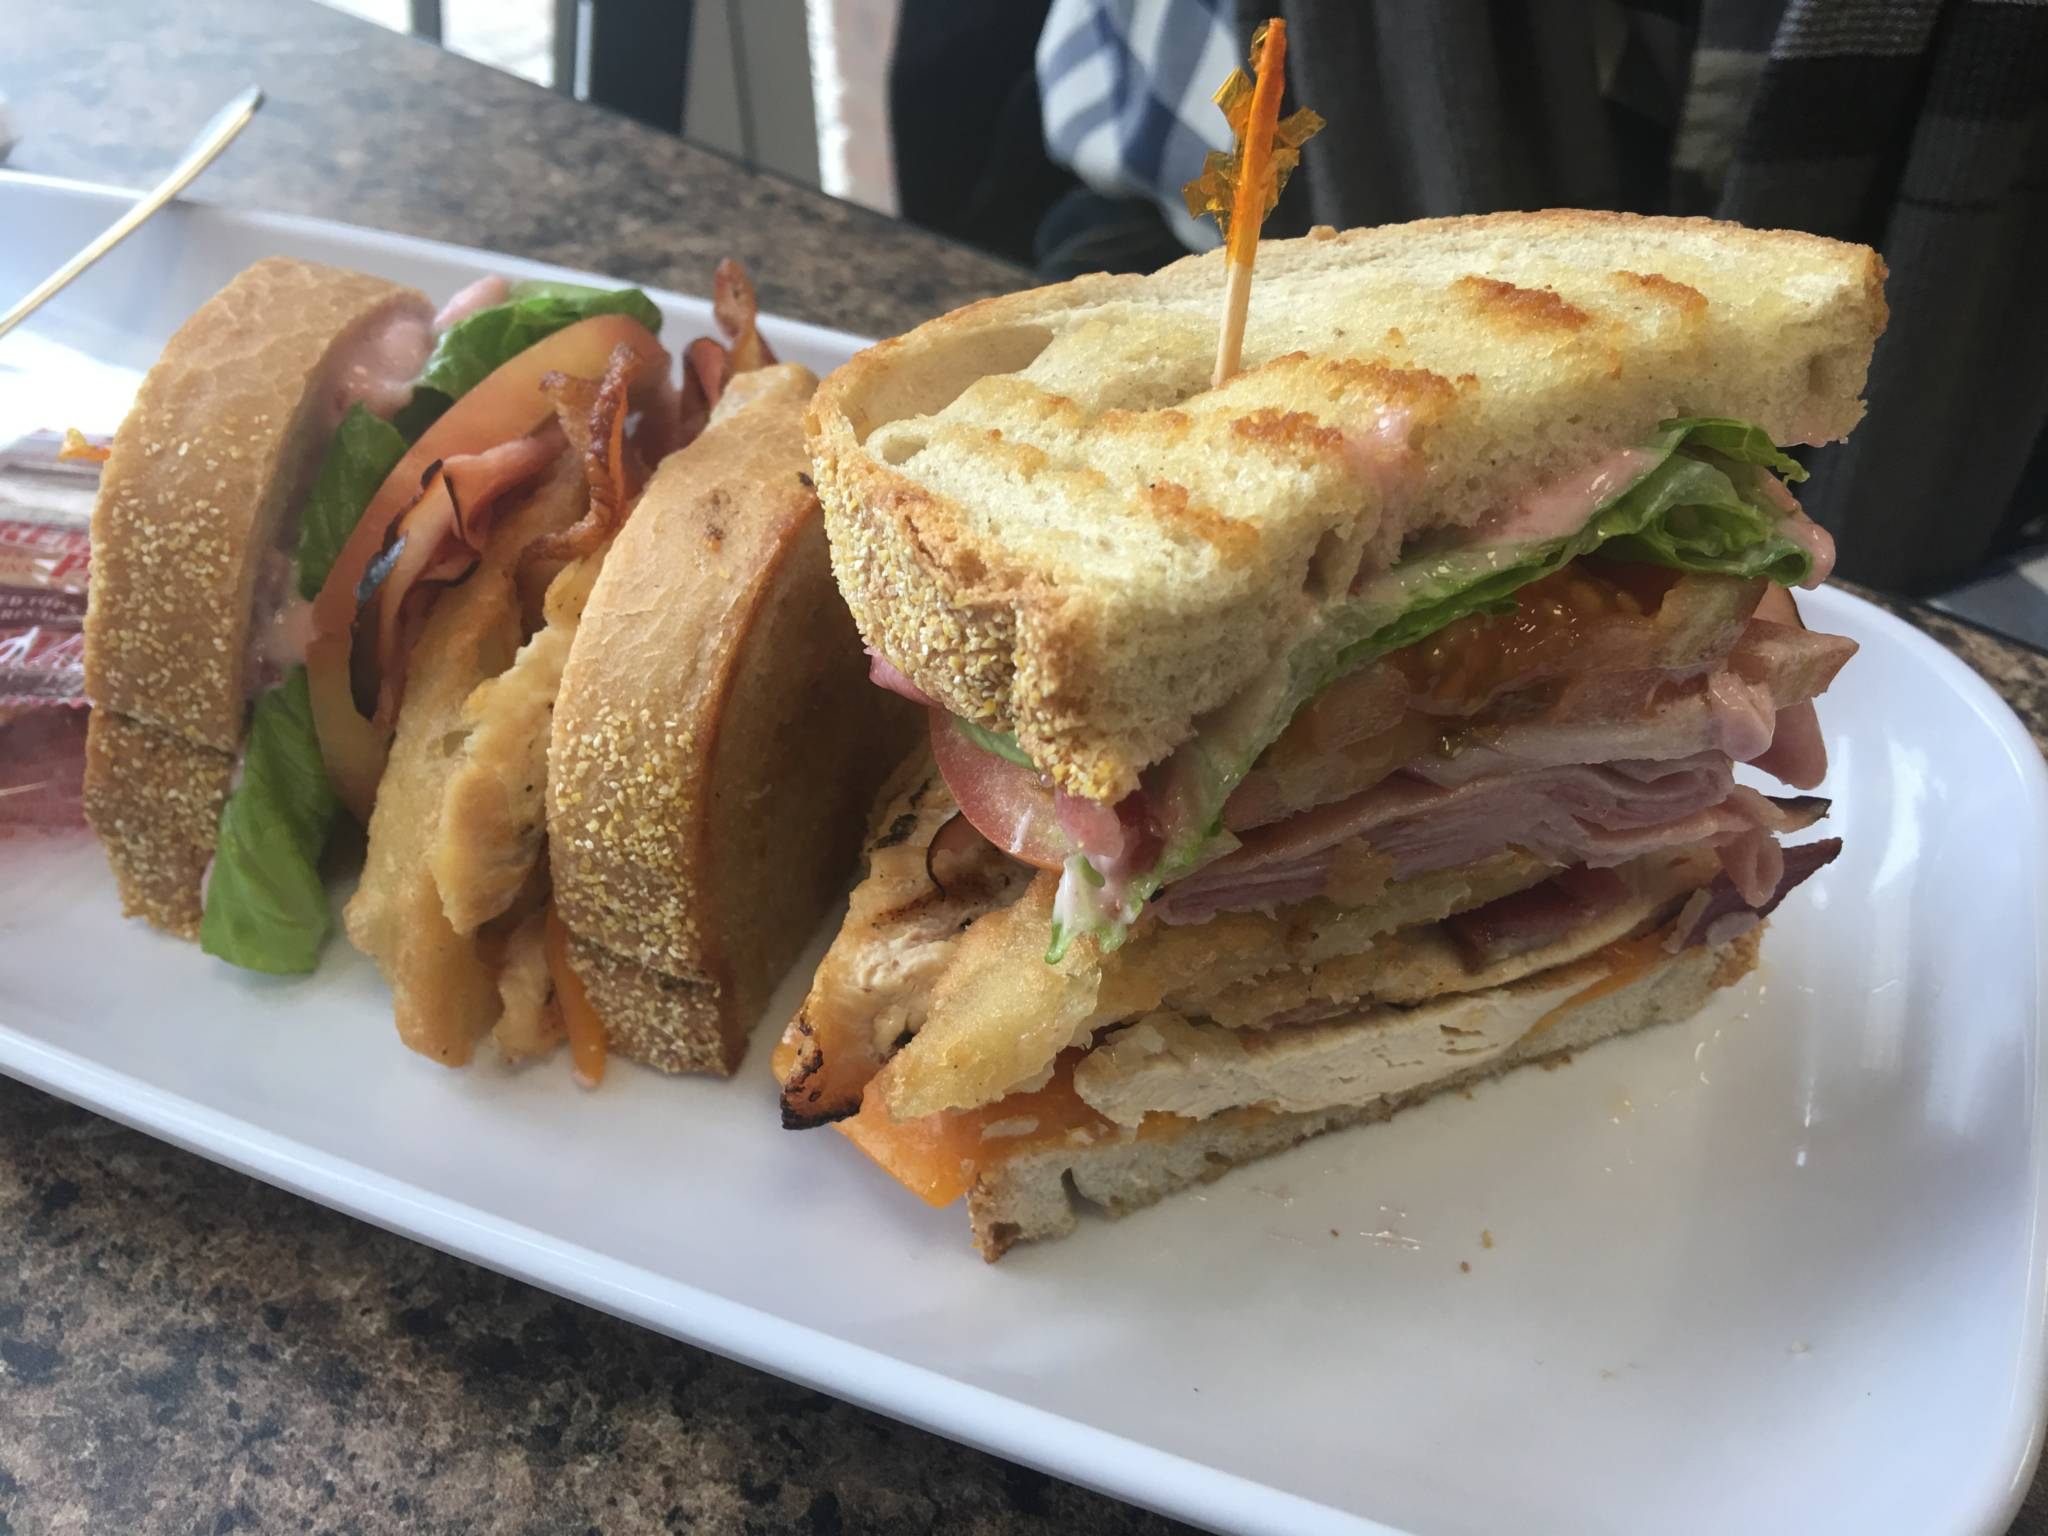 Toasted Do Good Deli Sandwich on a plate.